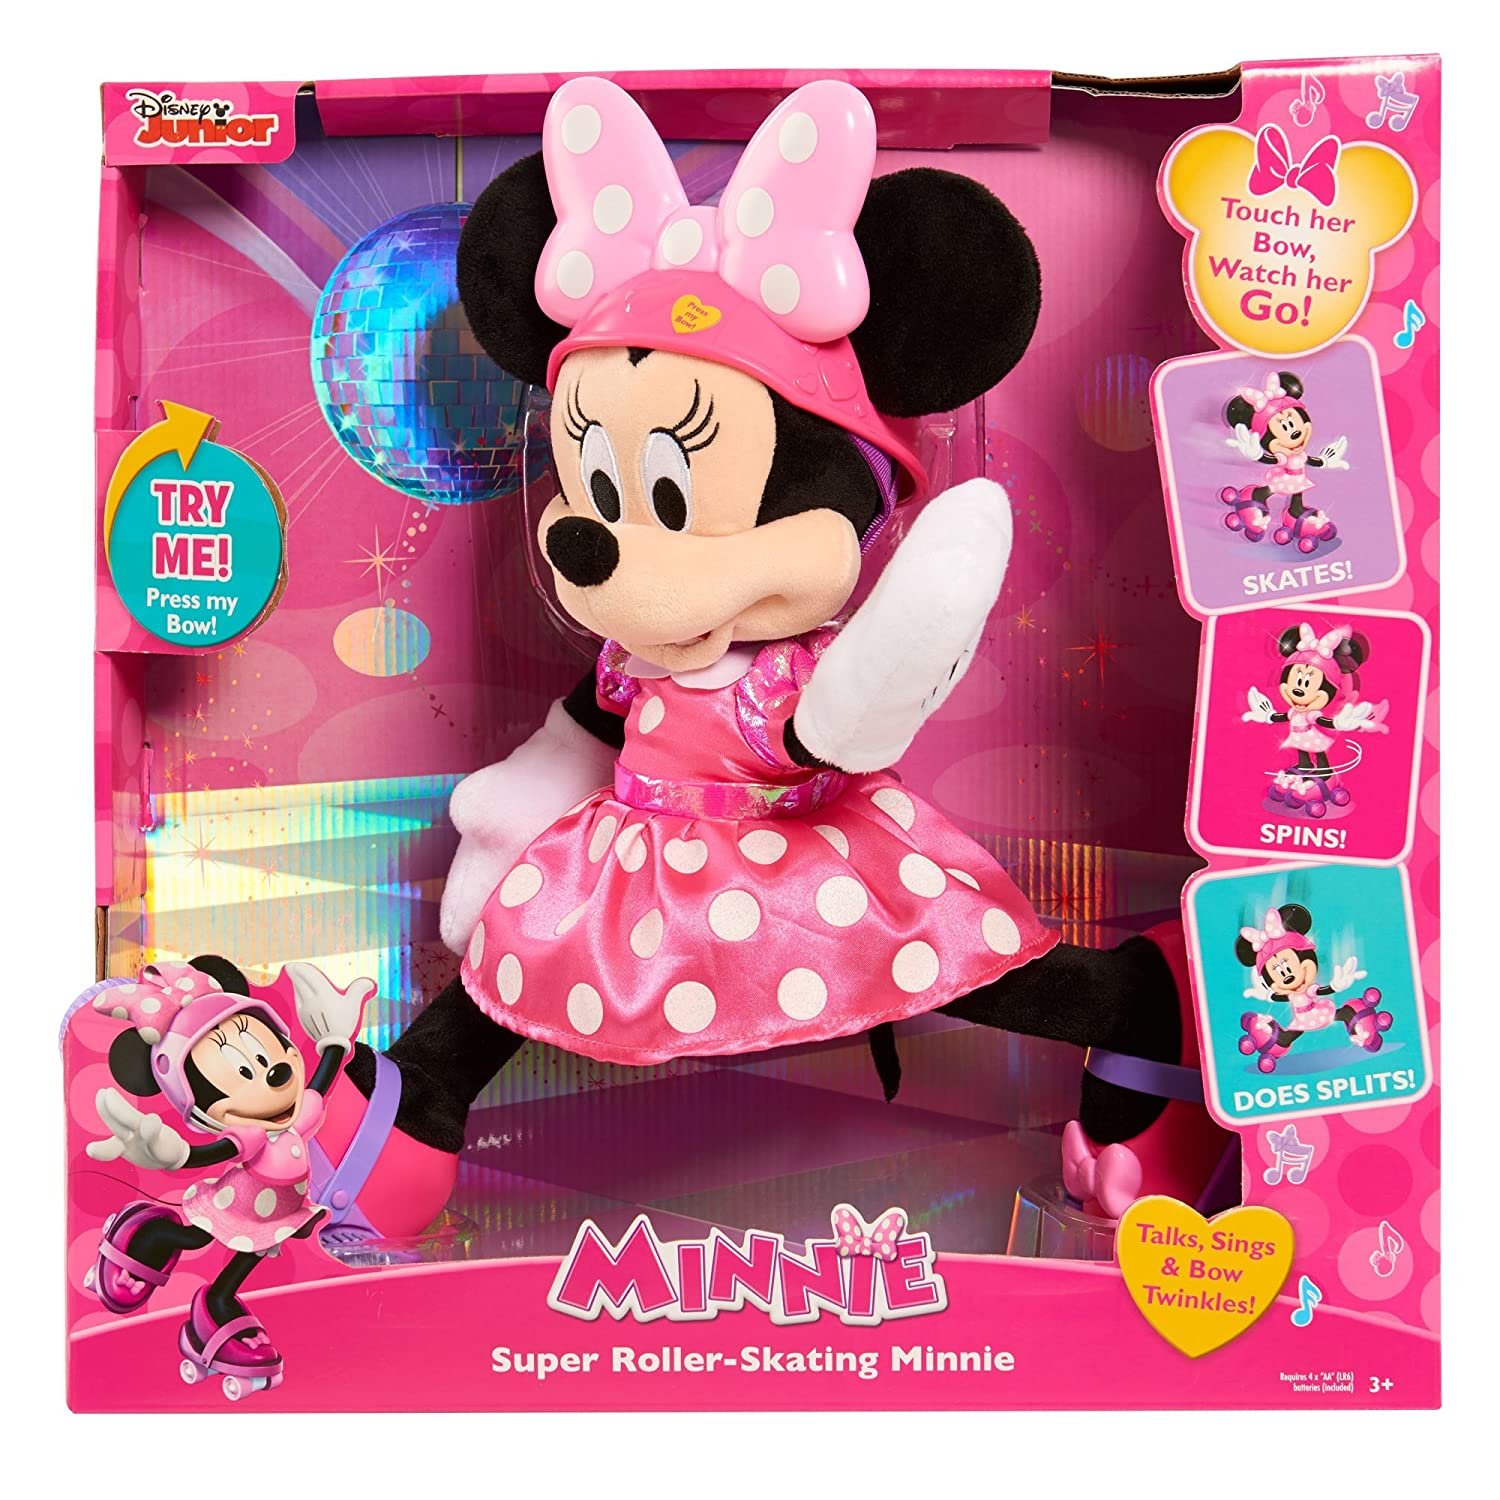 Minnie Mouse Super Roller-Skating Minnie